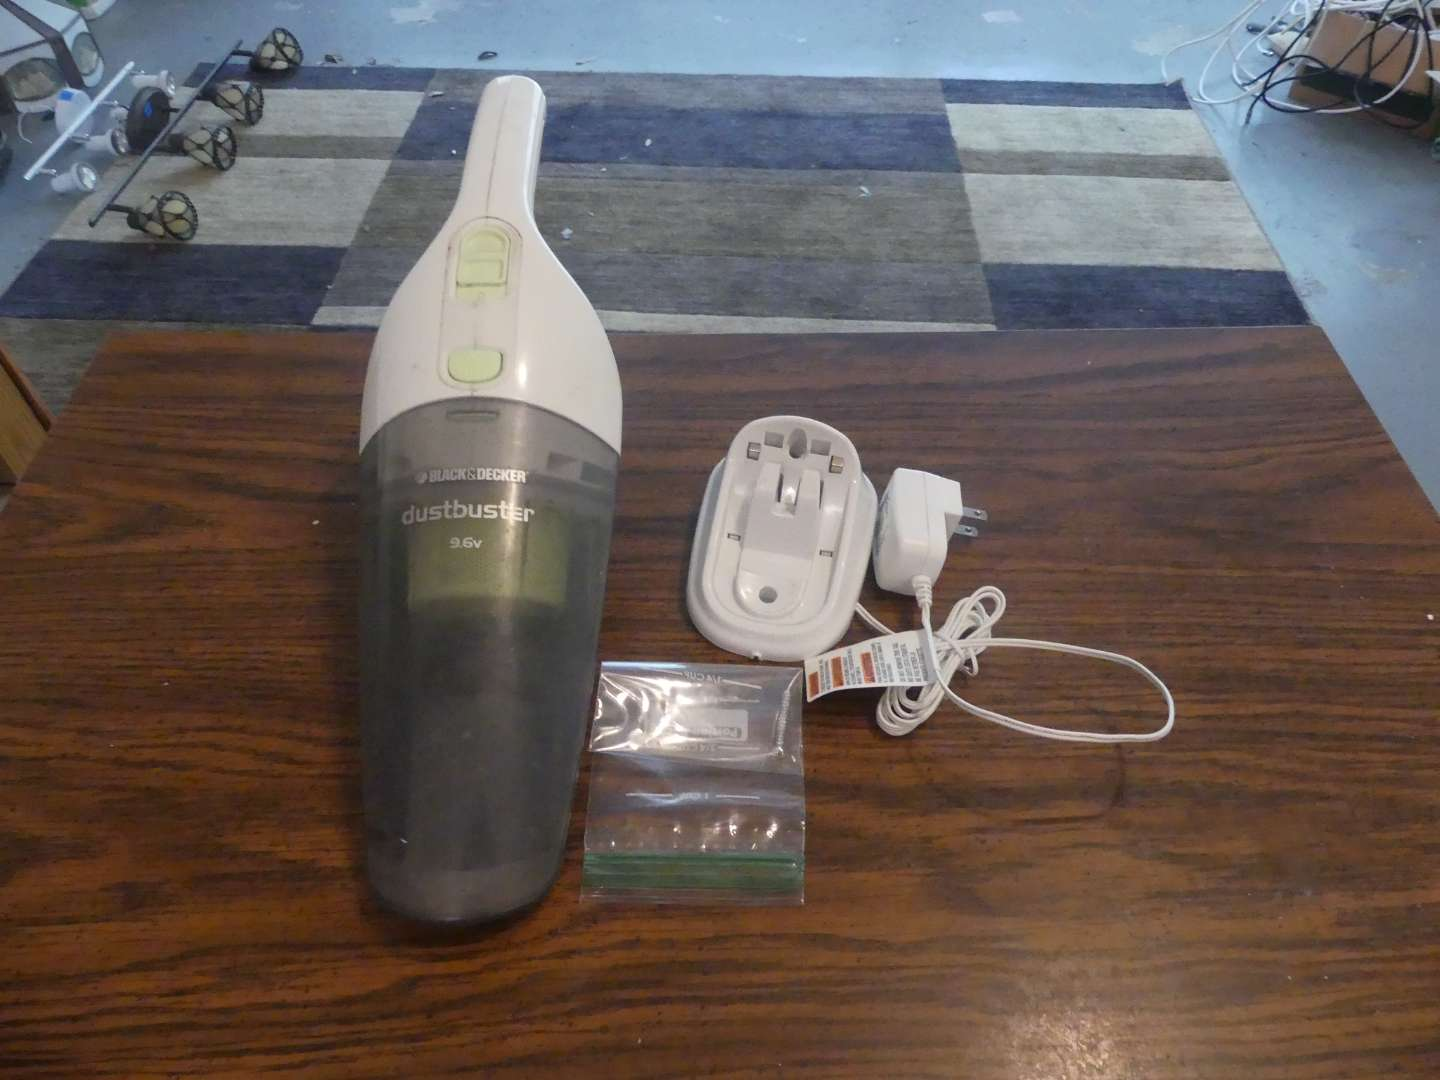 Lot #197 Black+Decker Dust Buster with Wall Charger